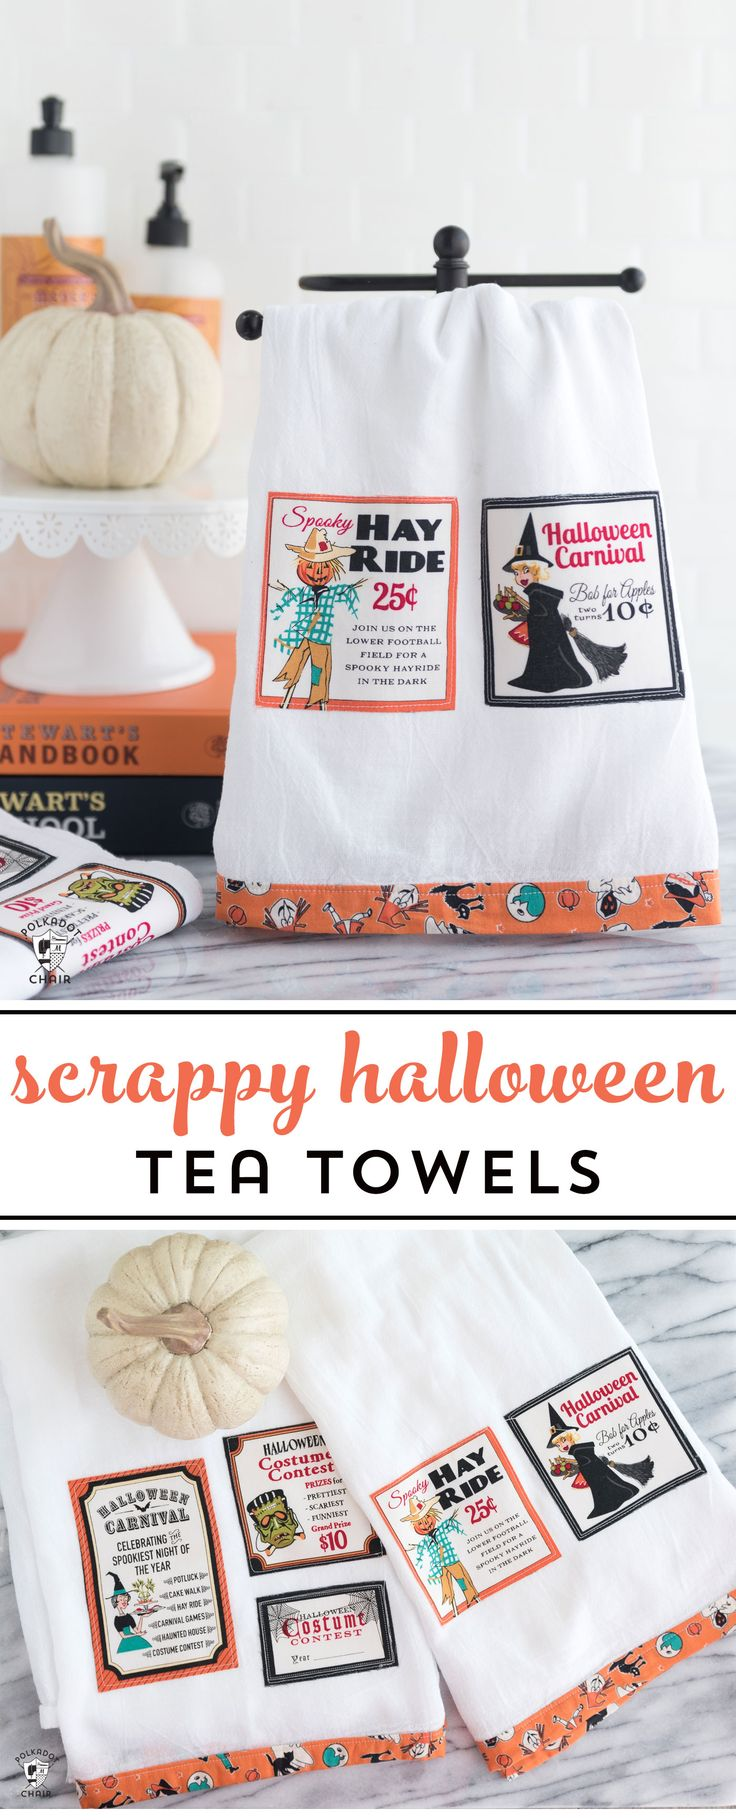 Free sewing tutorial for a DIY Halloween Tea Towel - such a cute project and a g...